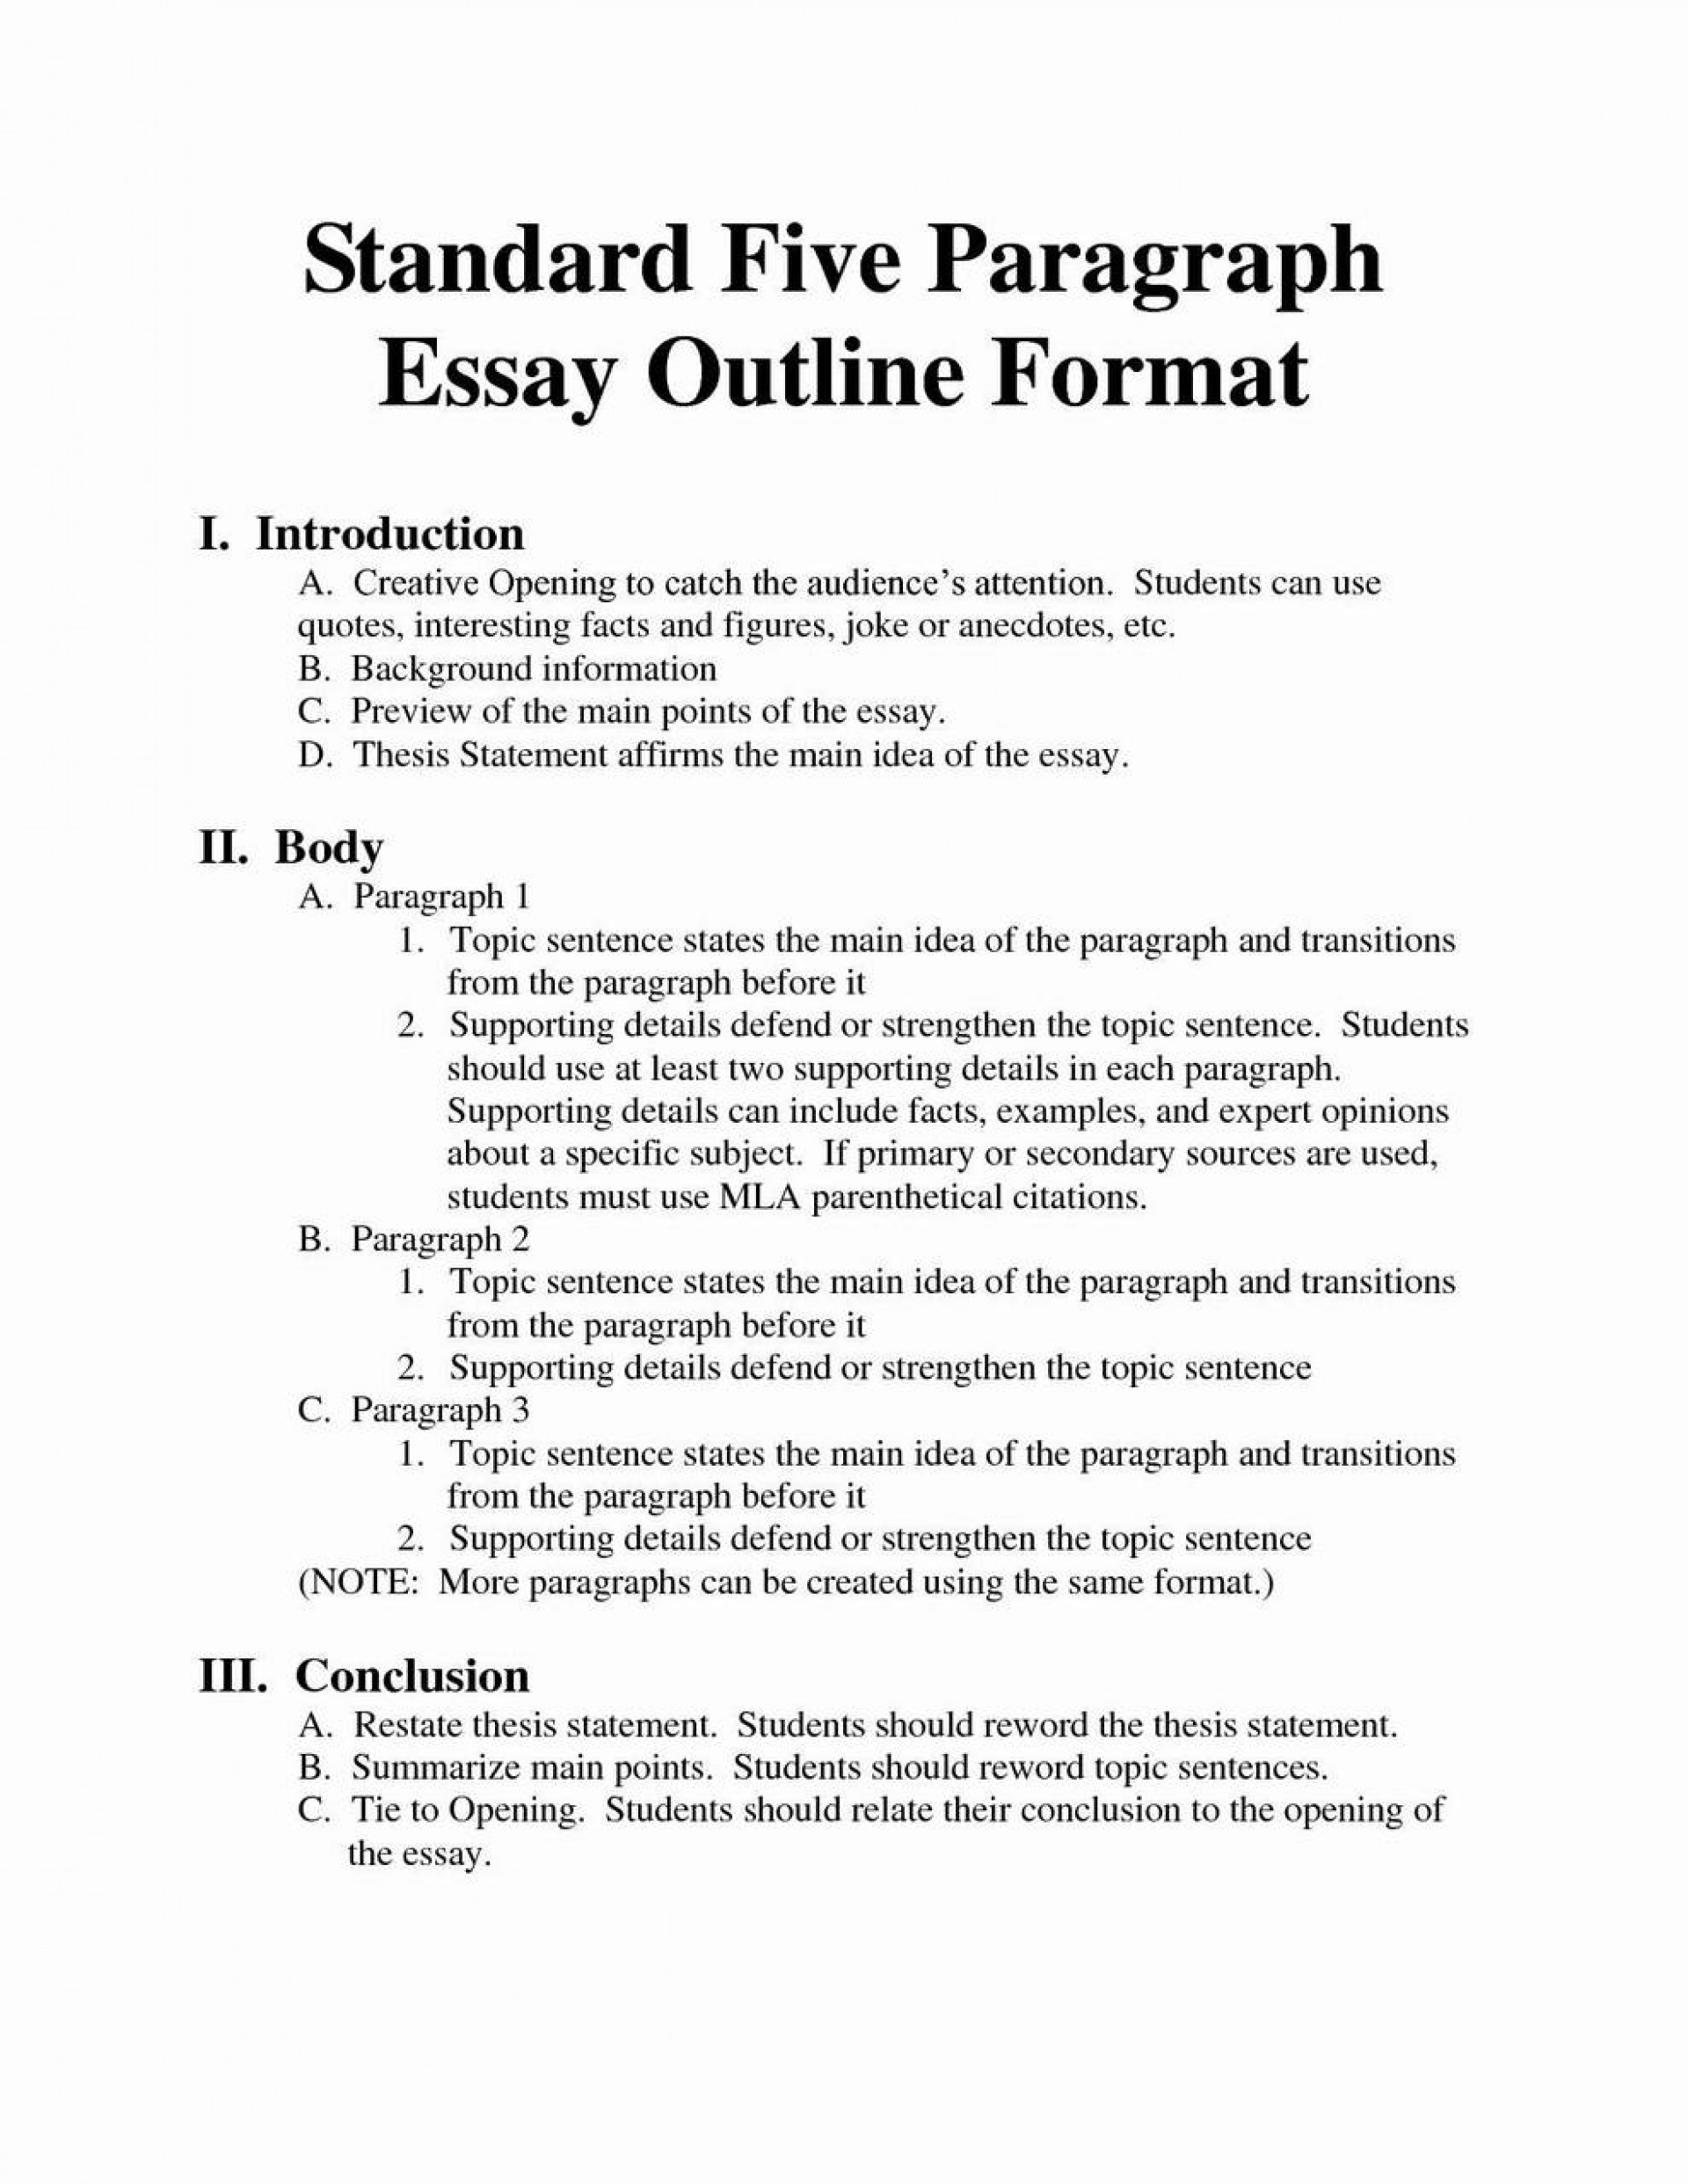 006 College App Resume Inspirational Best Essay English Essays Top Samples Tips On Writing Topics Ever Reddits That Worked Breathtaking 2016 Personal Australian 1920